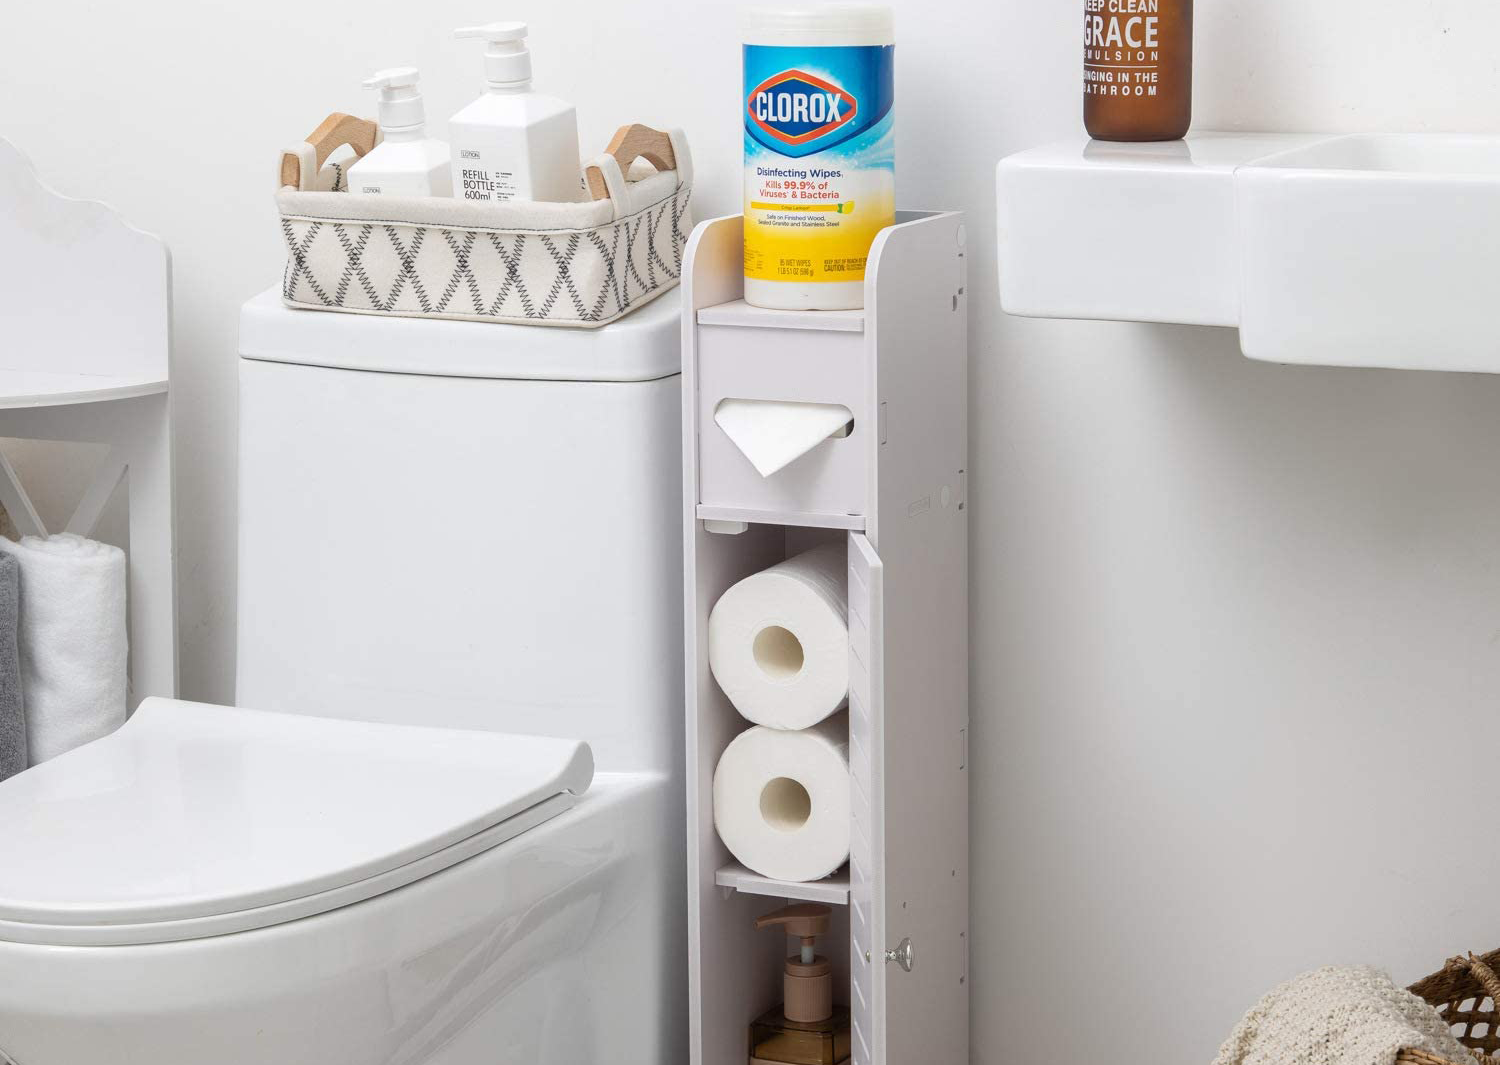 This Brilliant 26 Storage Cabinet For Small Bathrooms Has Amazon Shoppers Obsessed Bgr